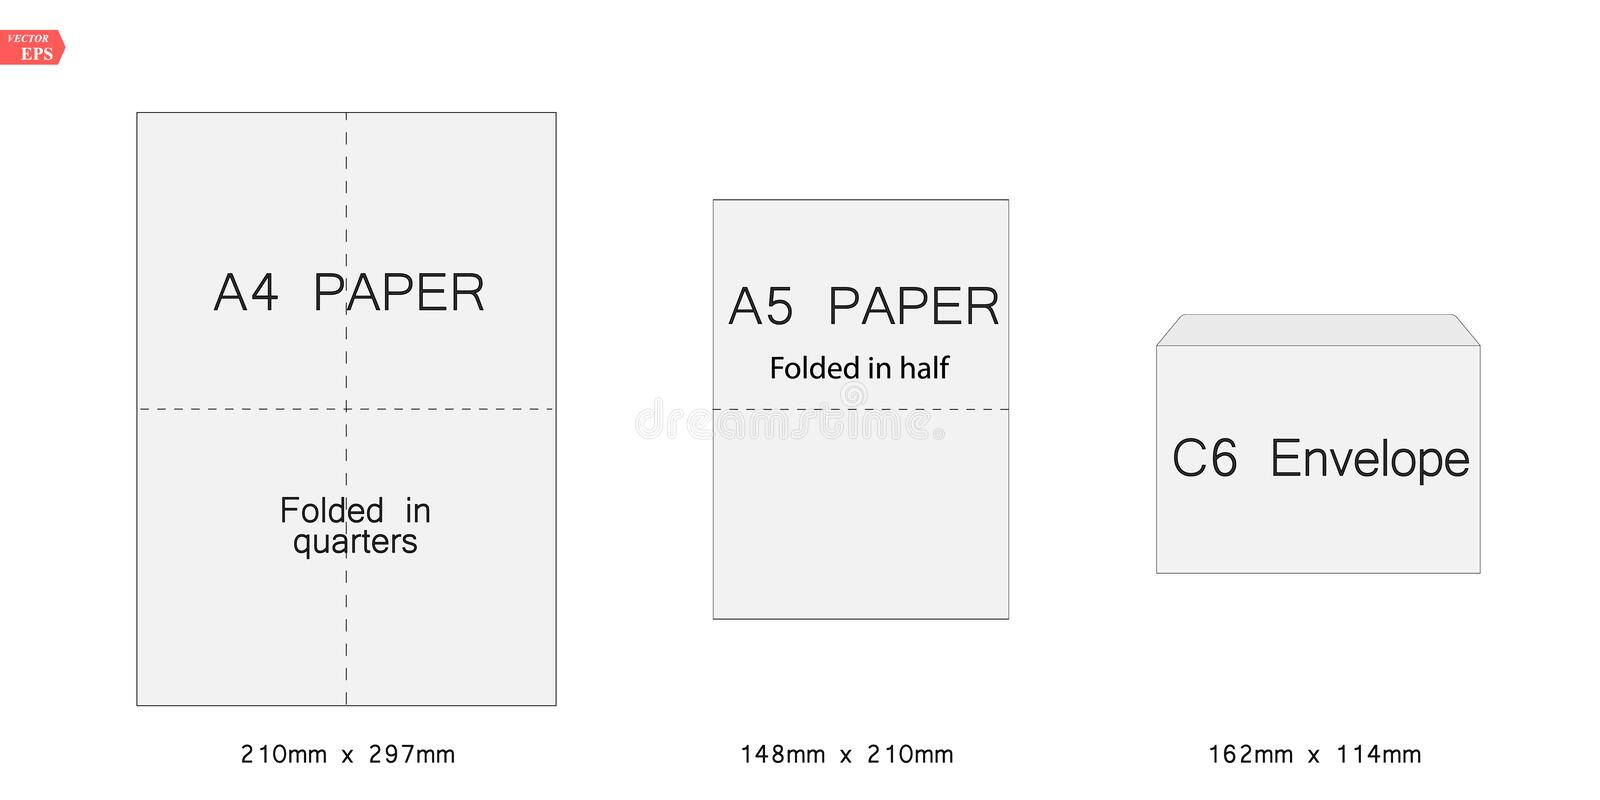 Envelope c6 template for a4, a5 paper. Vector illustration stock illustration